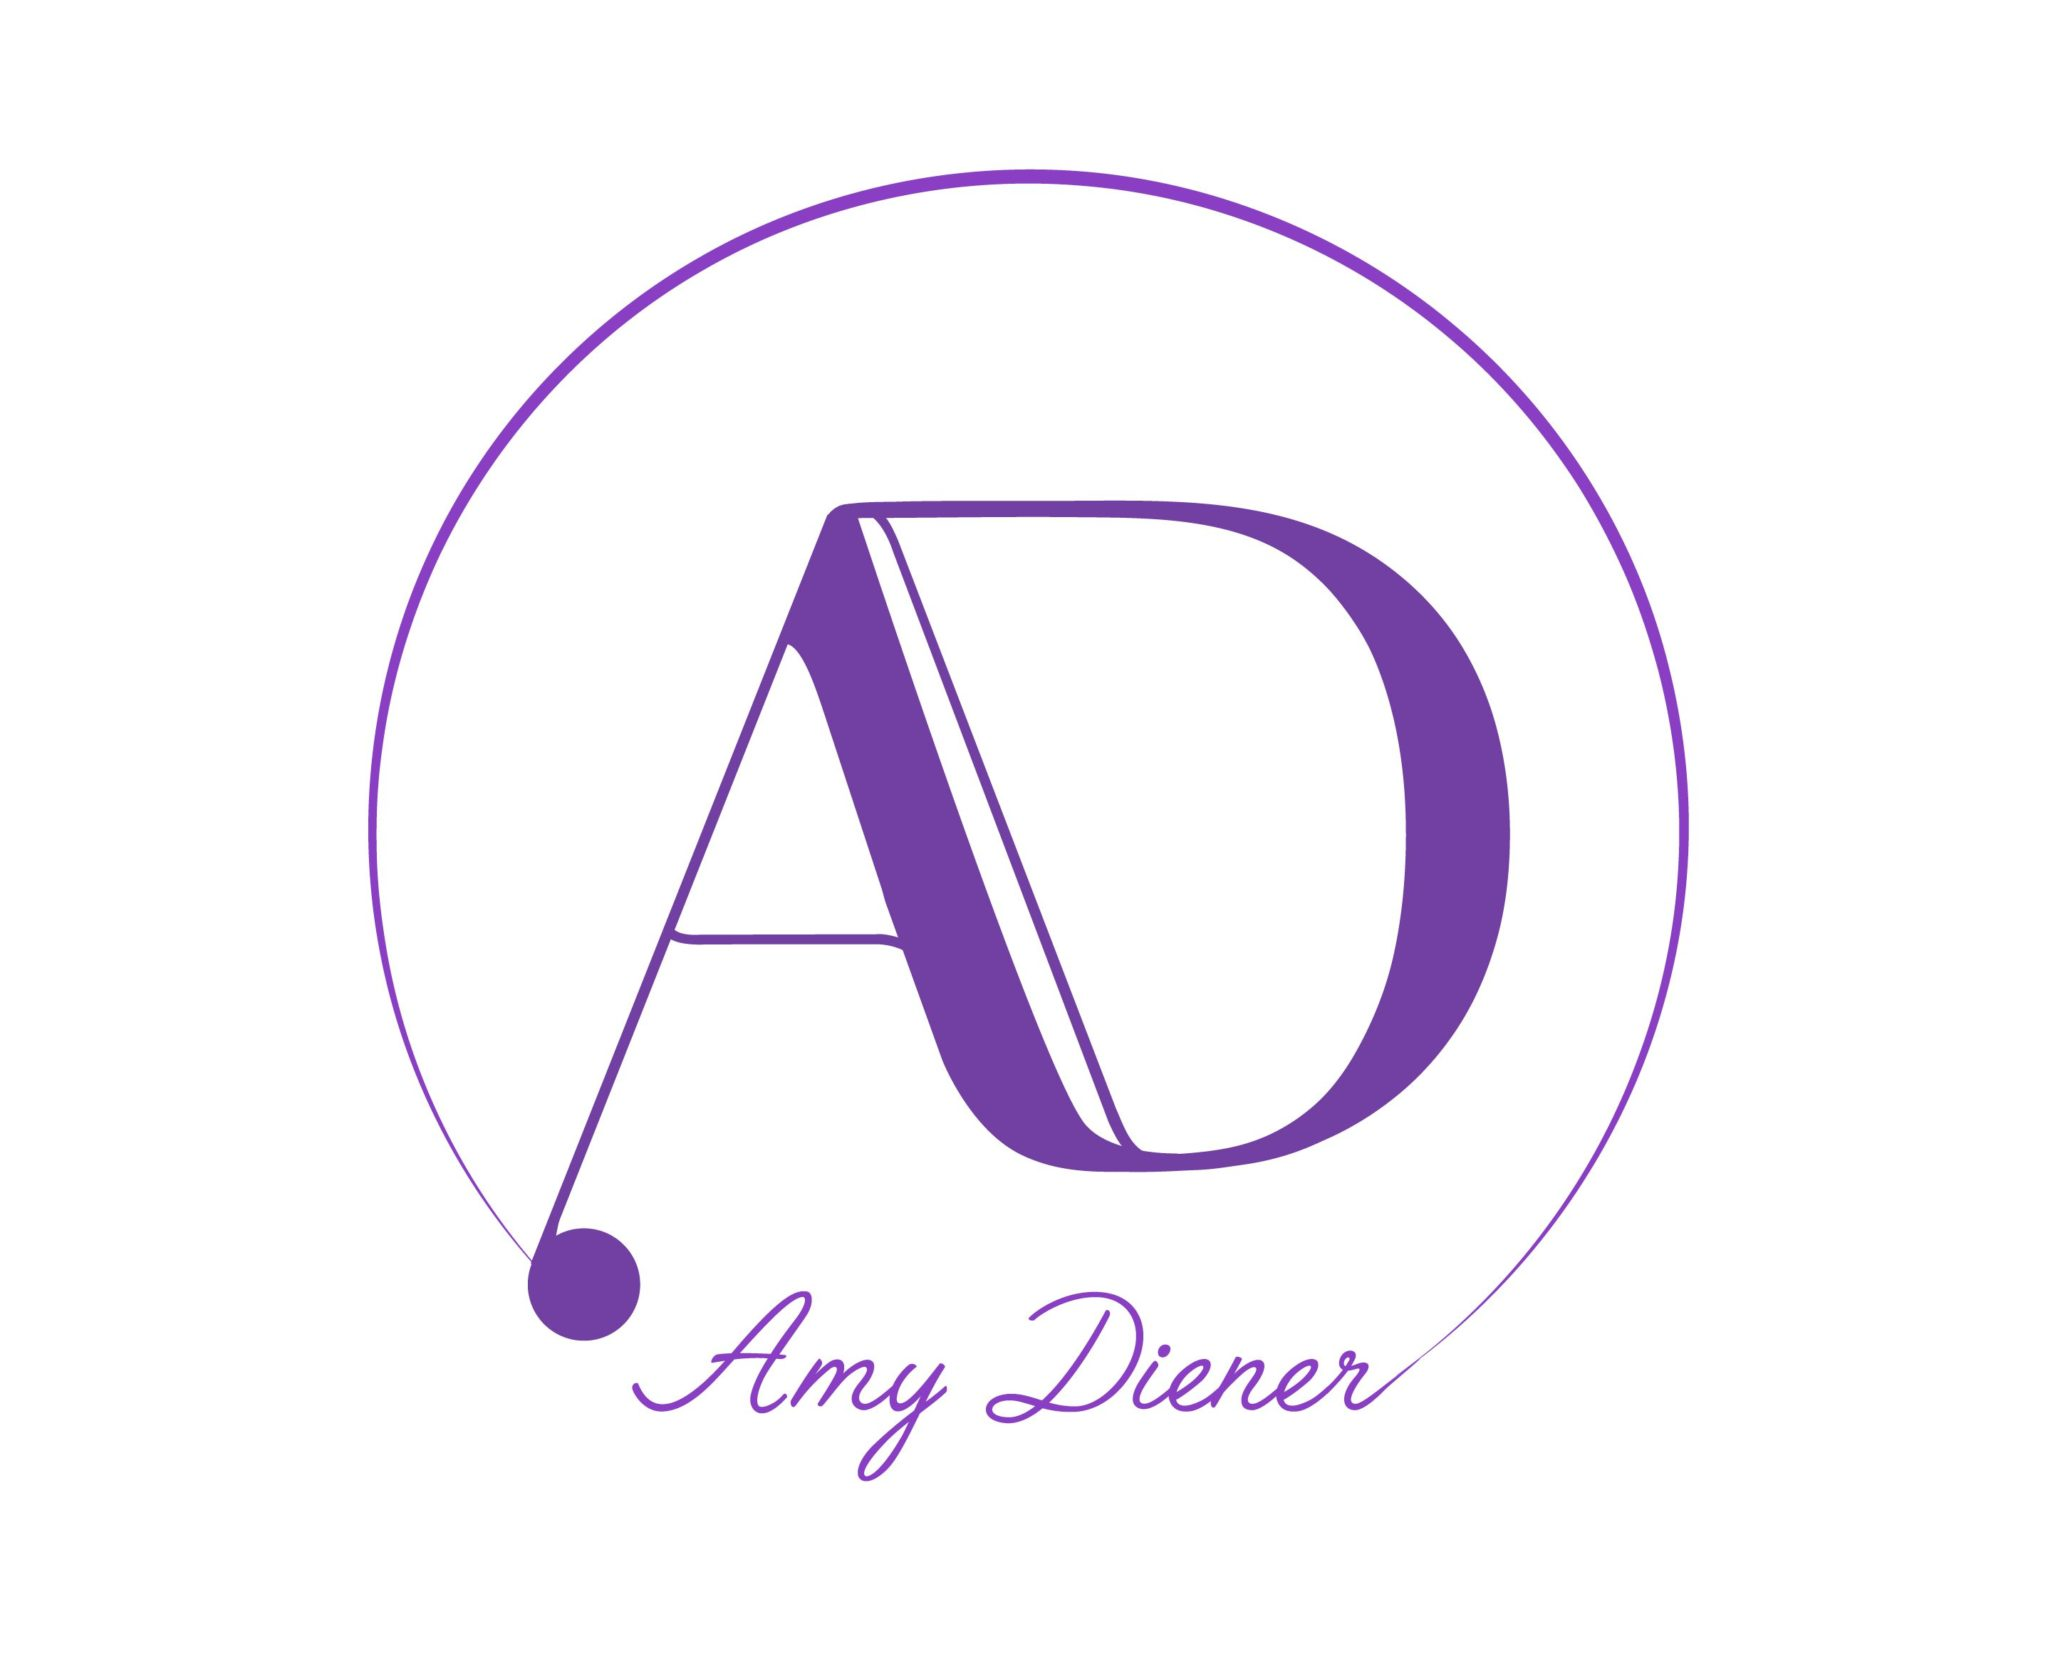 AMY DIENER logo by Suzaku Productions